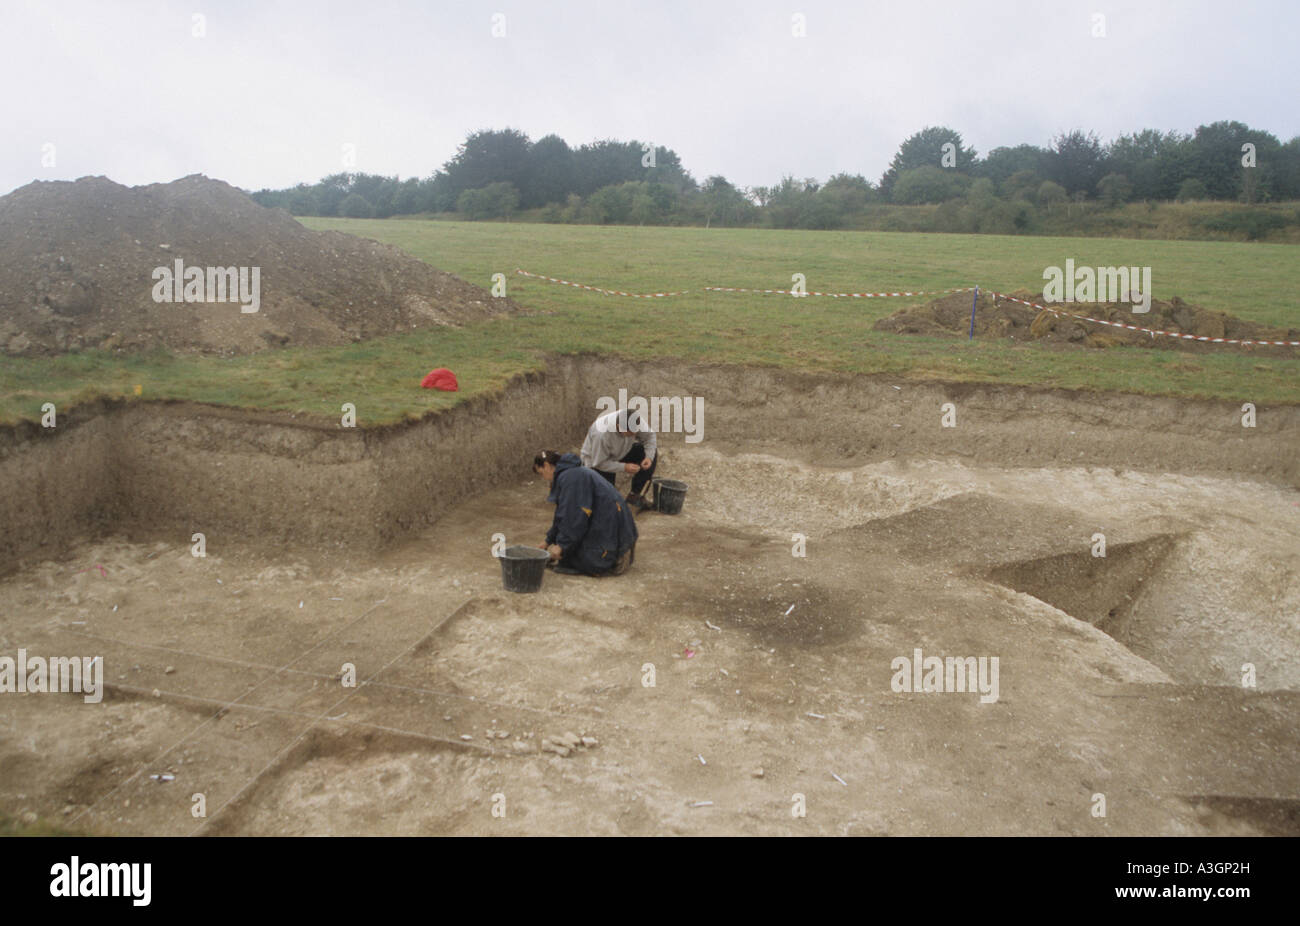 Archaeologists digging on an ancient site near Stonehenge in England Stock Photo